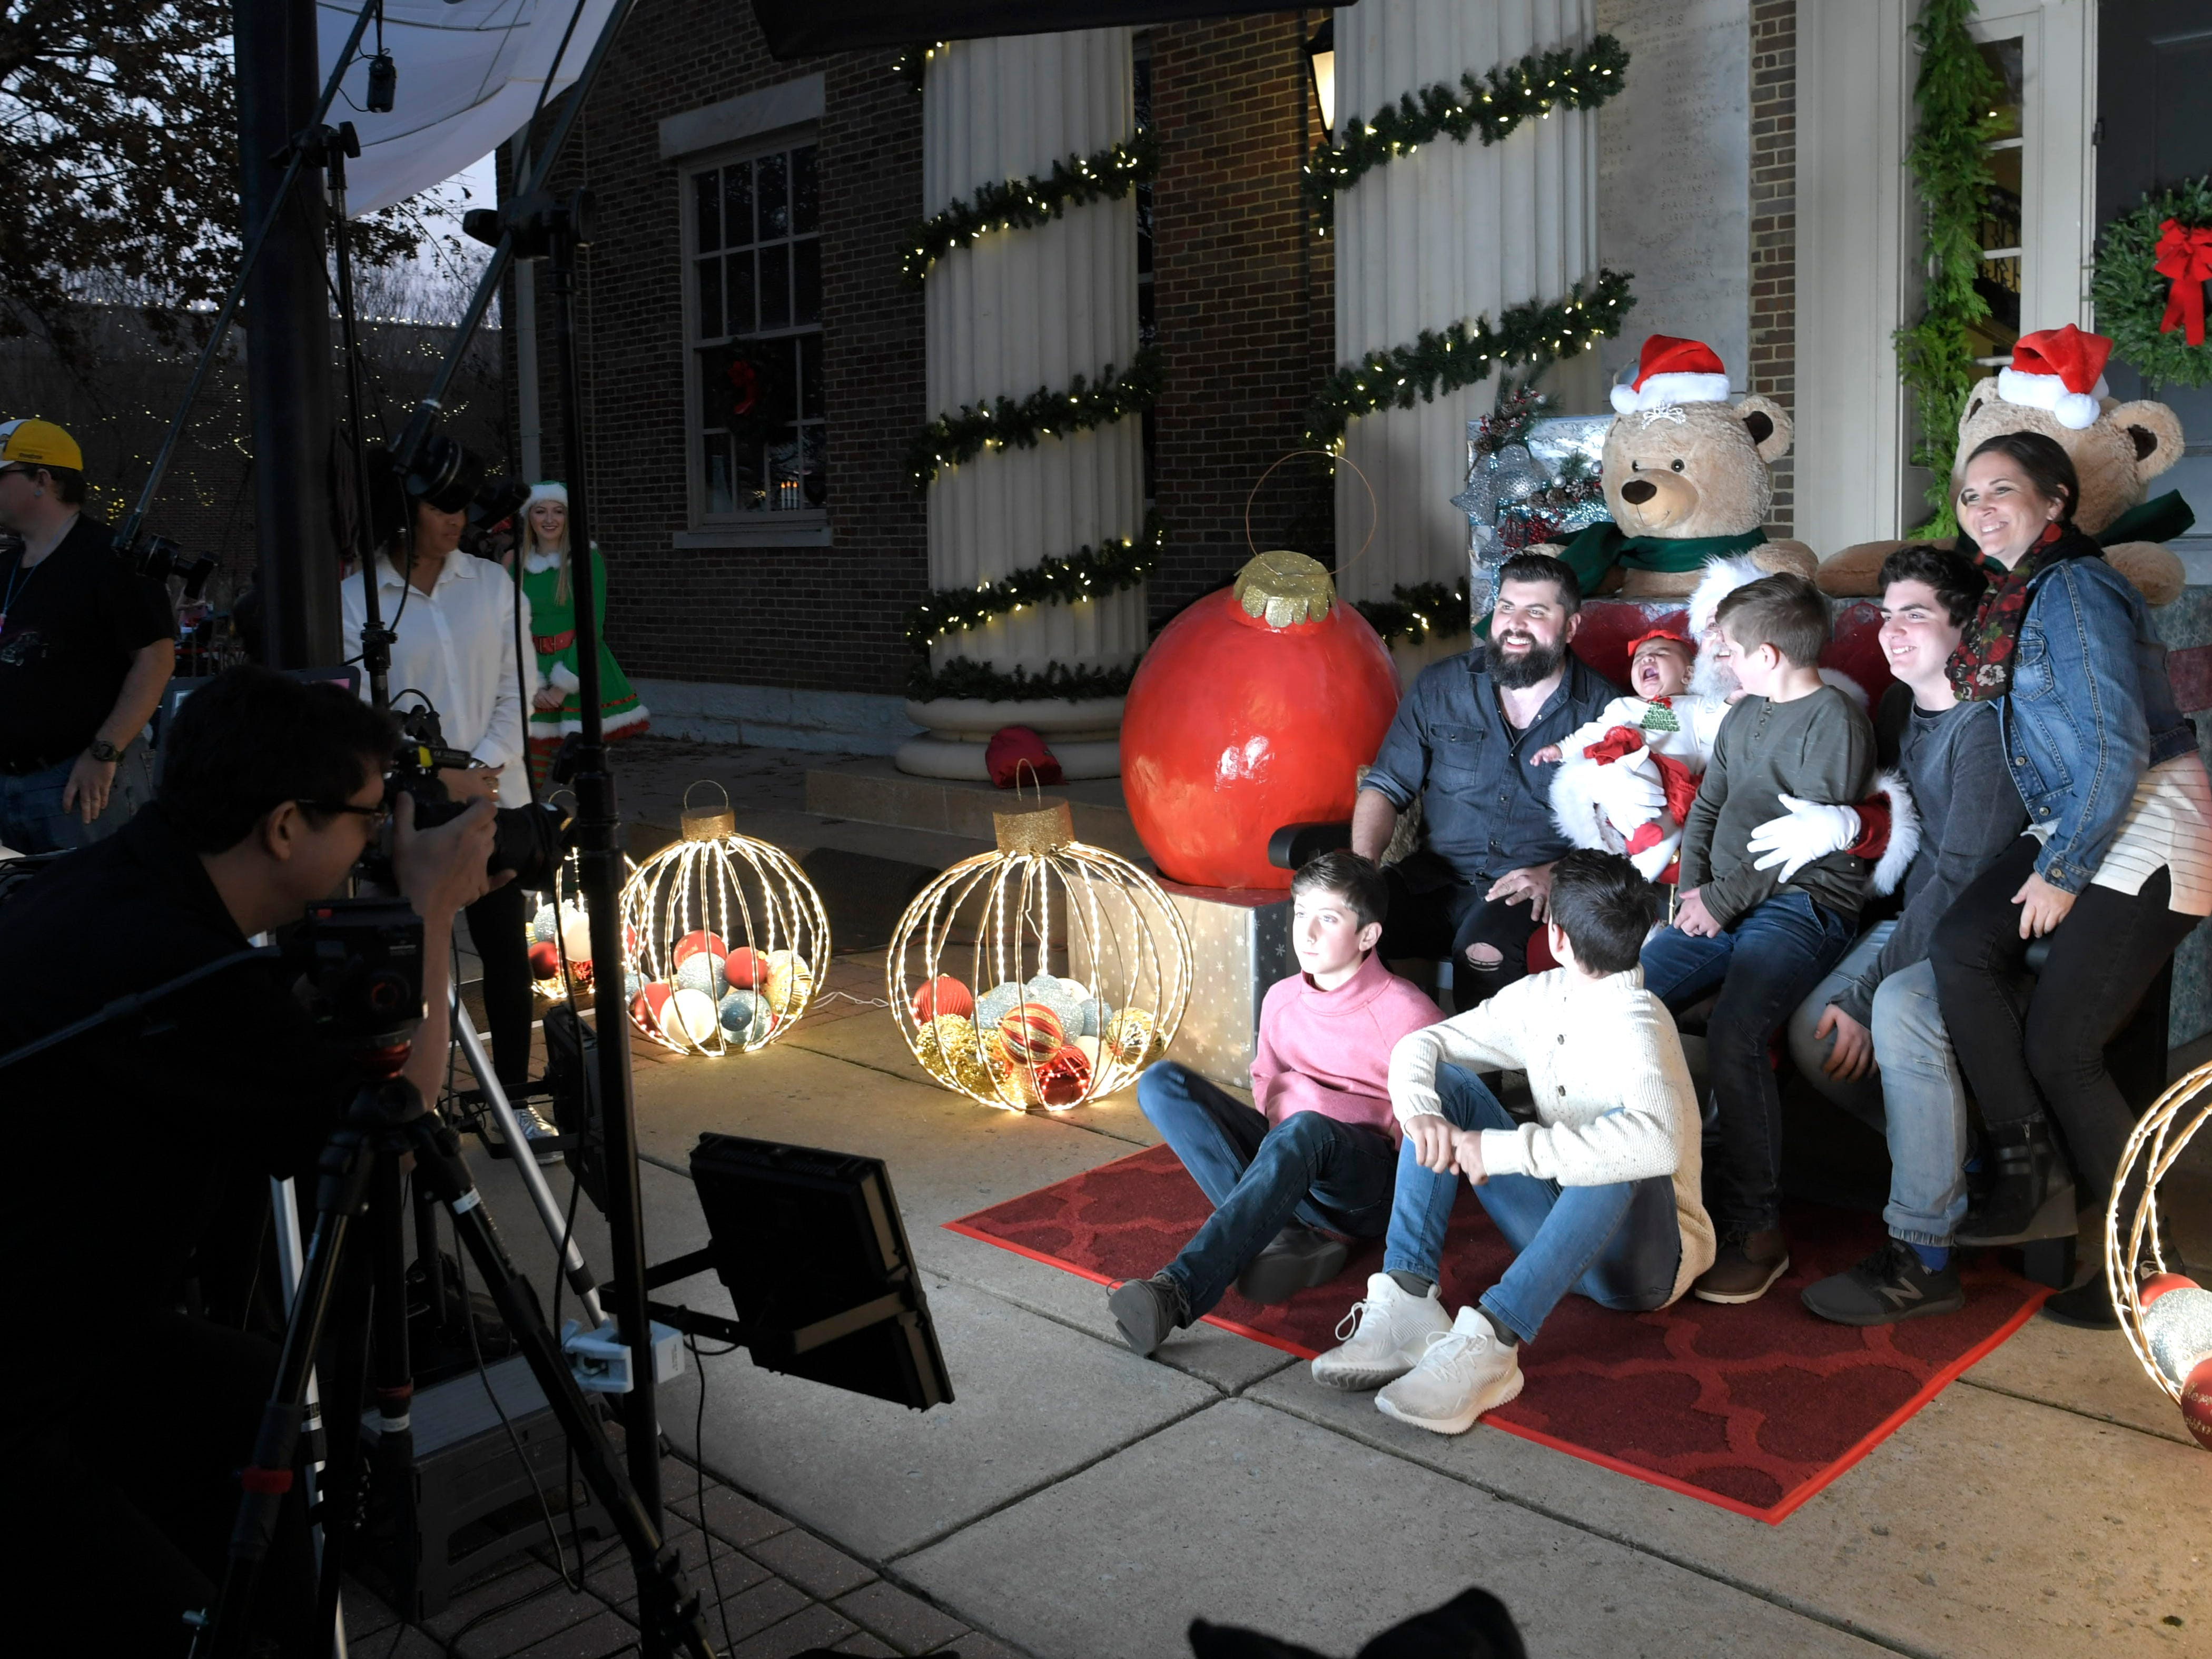 The Clayton family of Spring Hill gets a family photo with Santa during the Franklin's annual Christmas Tree Lighting on Sunday, Dec. 2, 2018.